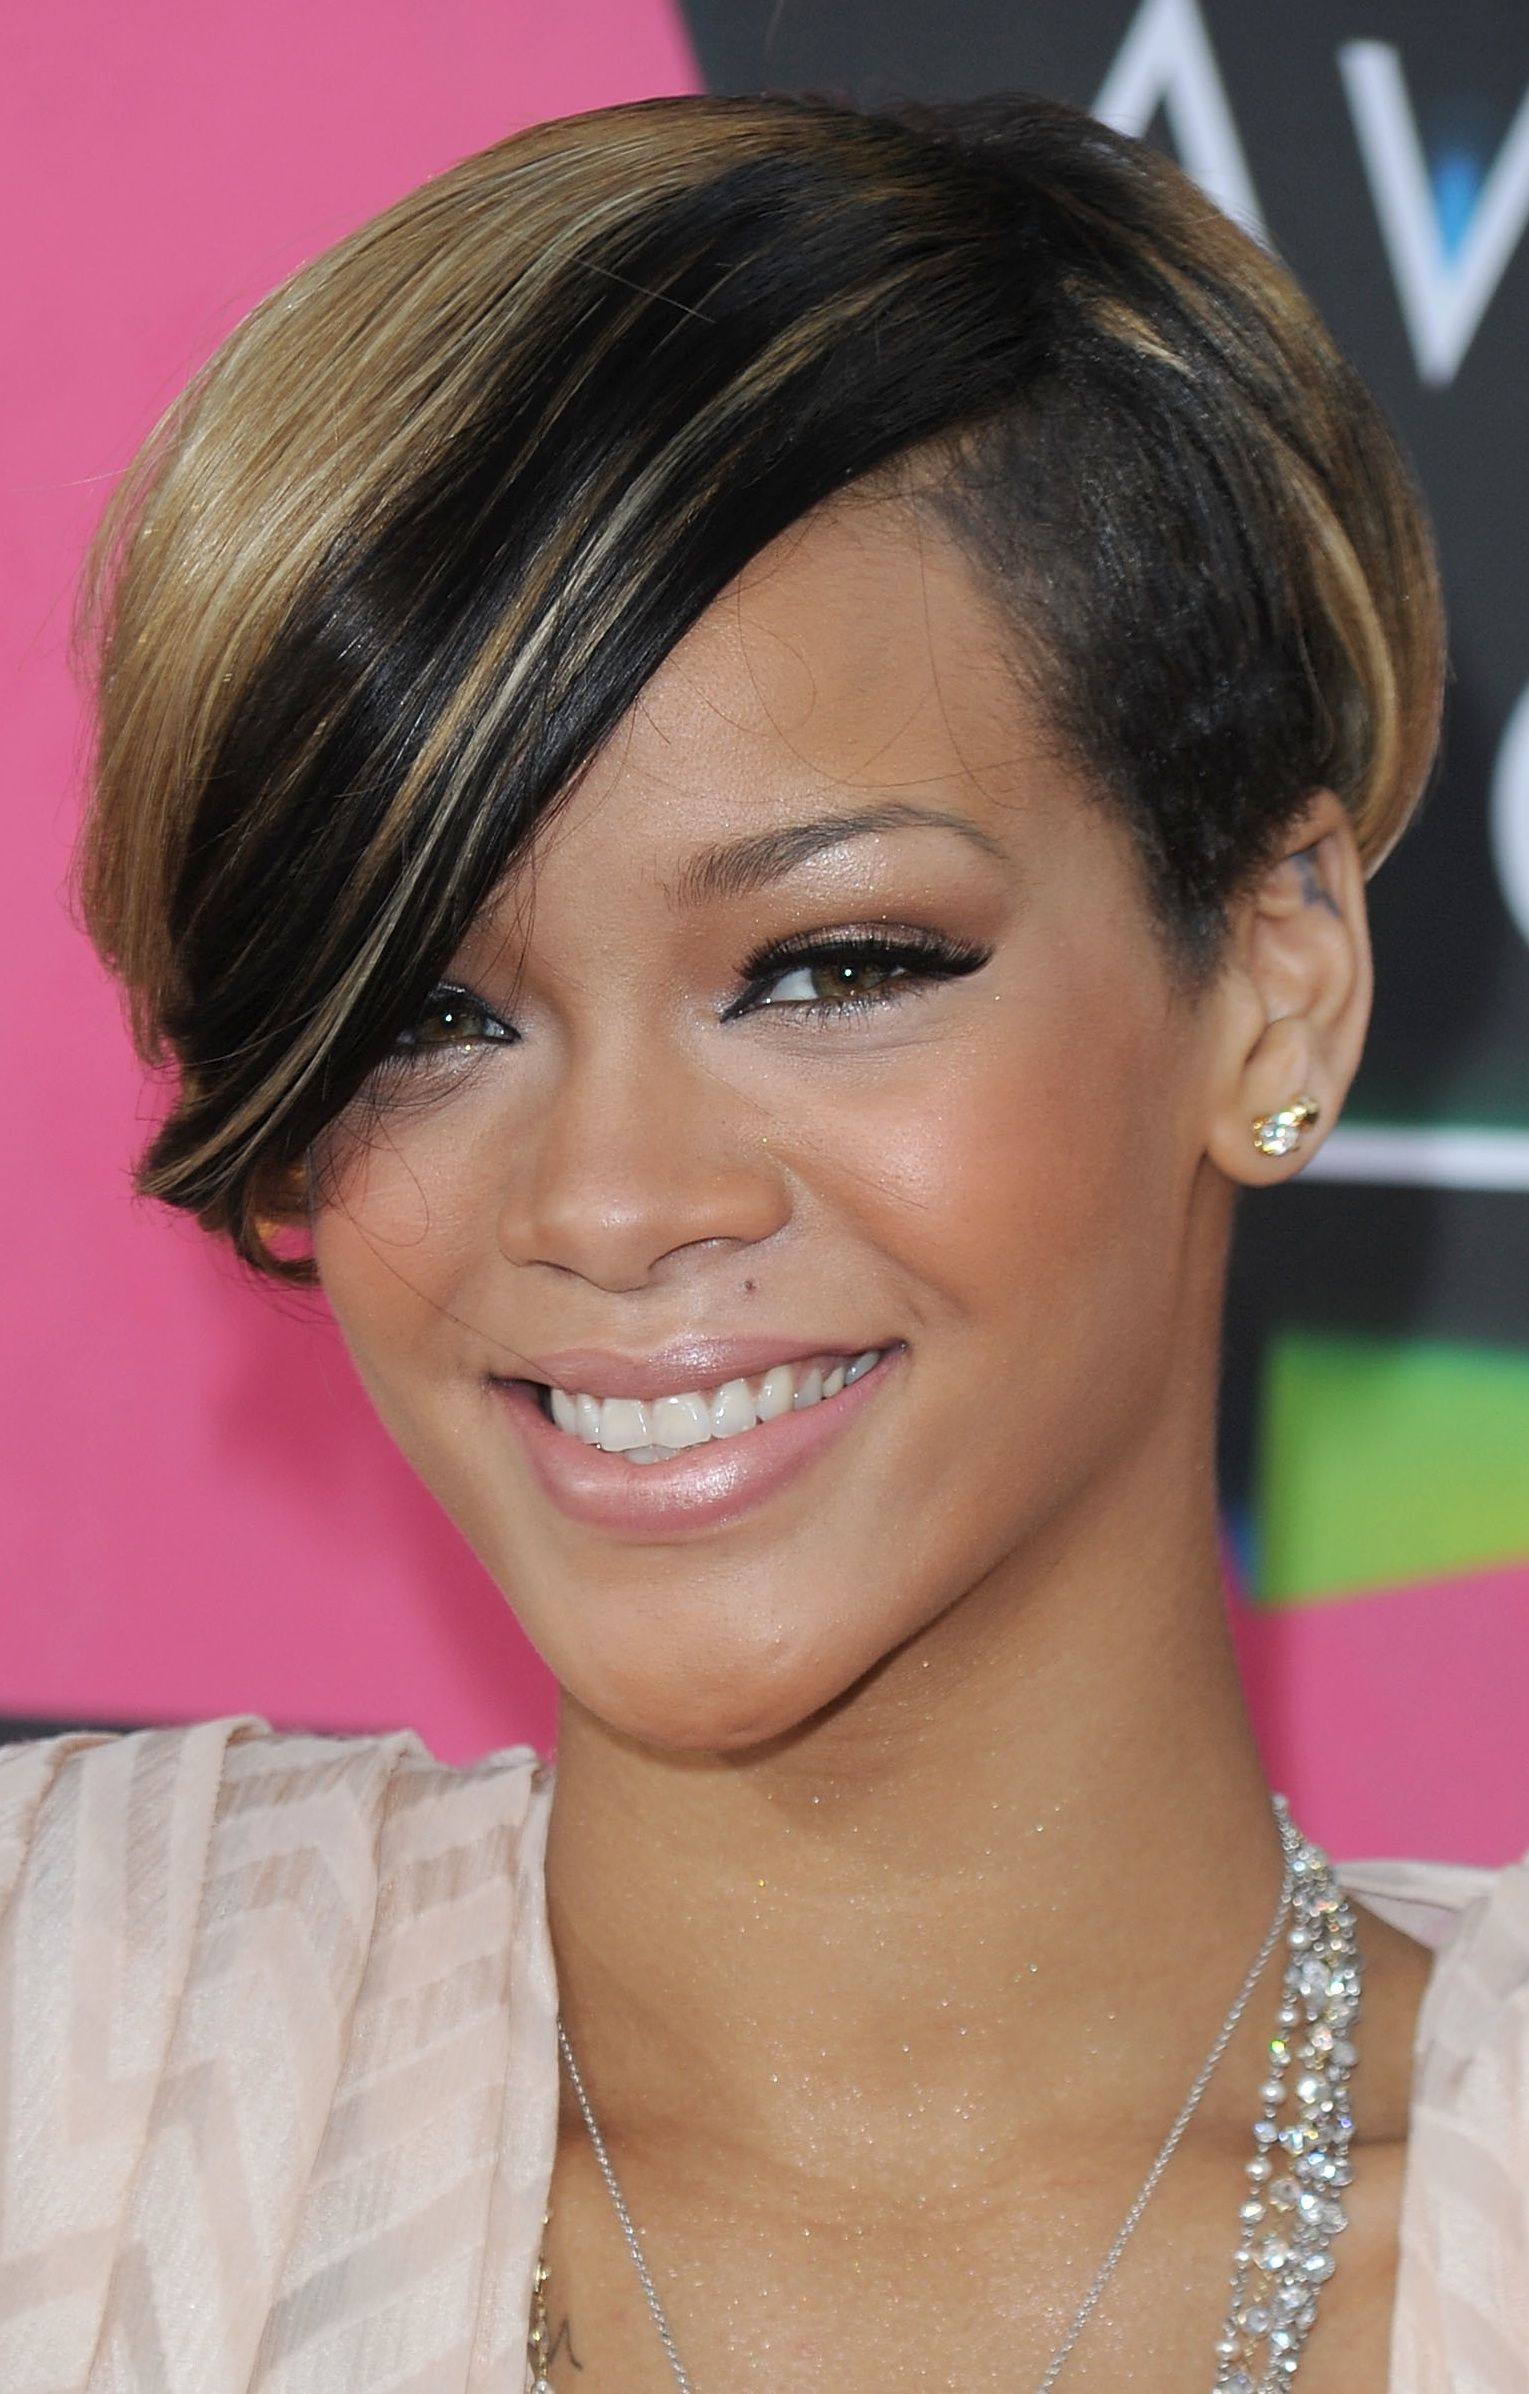 Awesome Short Hairstyles For Black Women With Oval Faces Gallery